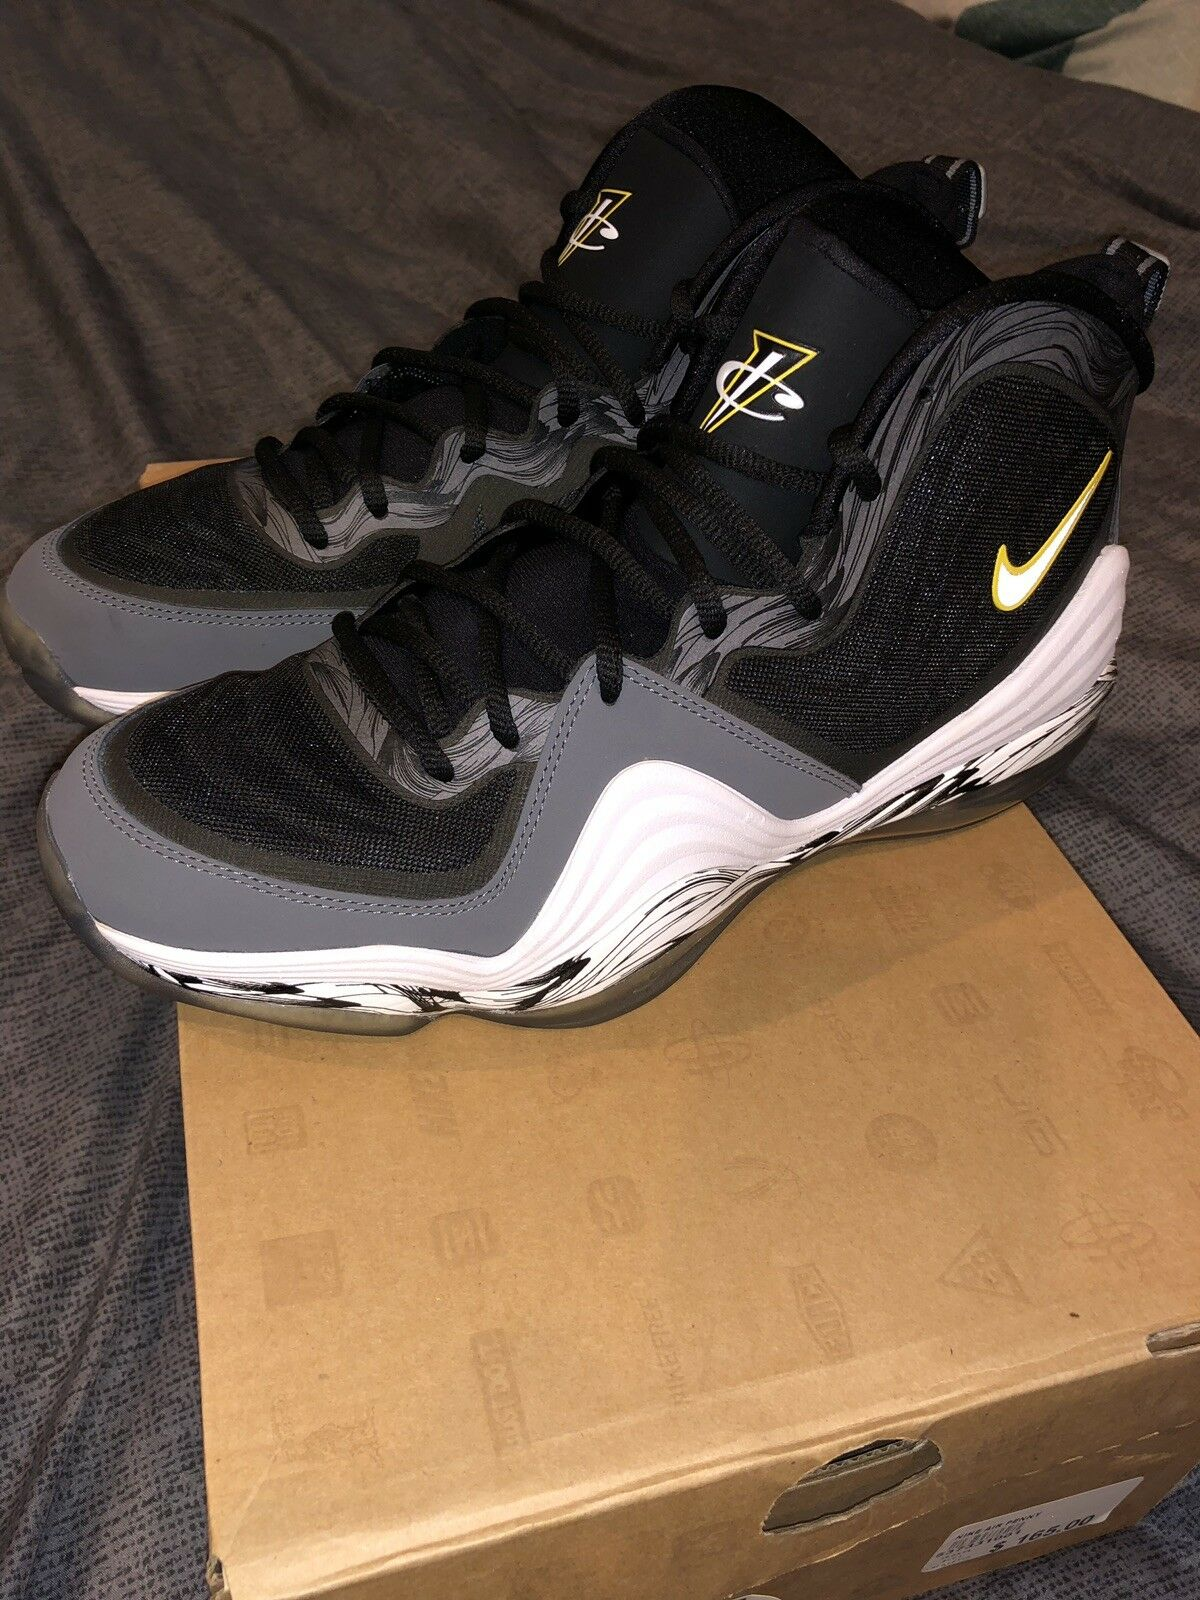 Nike air penny 5 5 penny tour